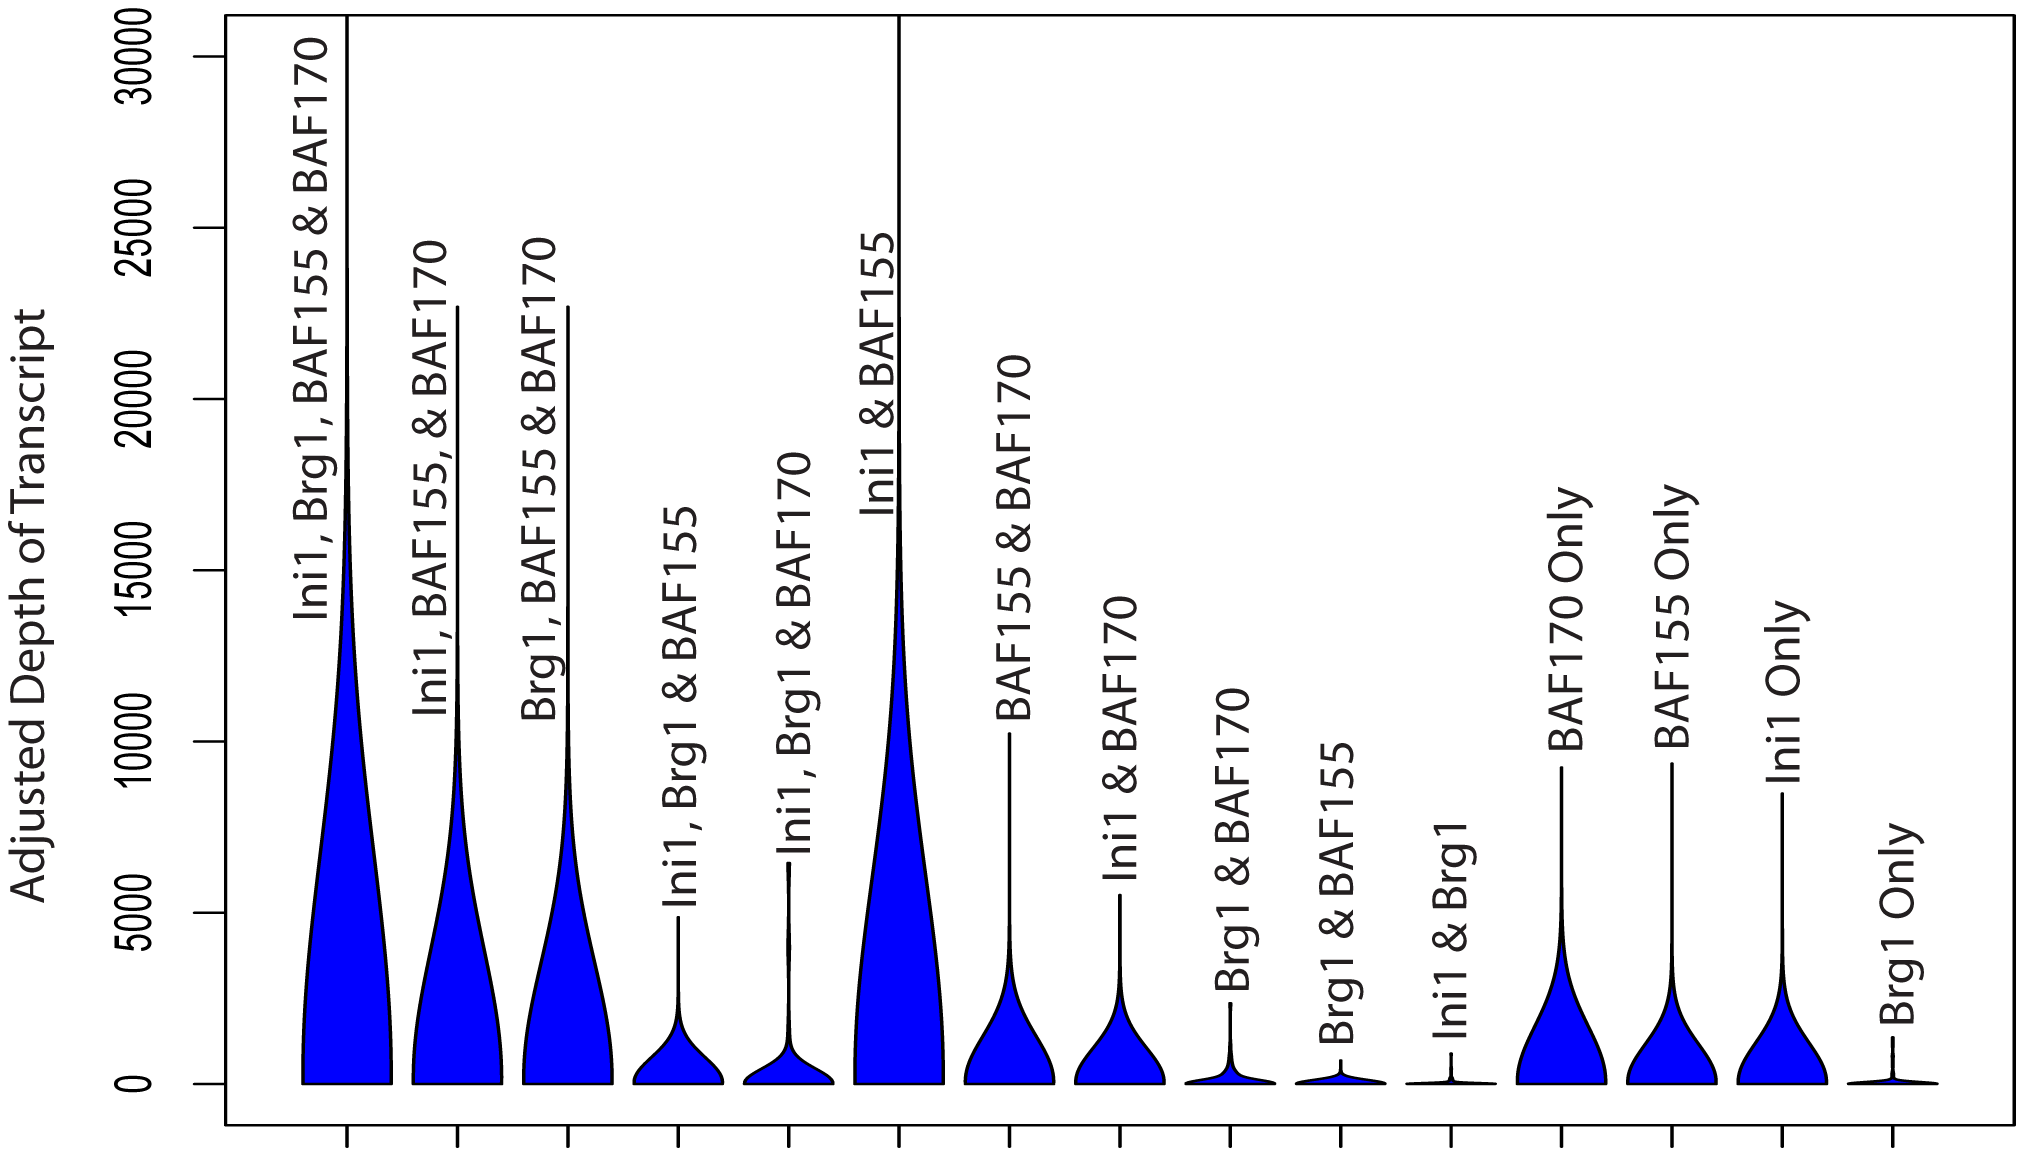 Violin plots of expression values across all possible SWI/SNF subunit occurrences.